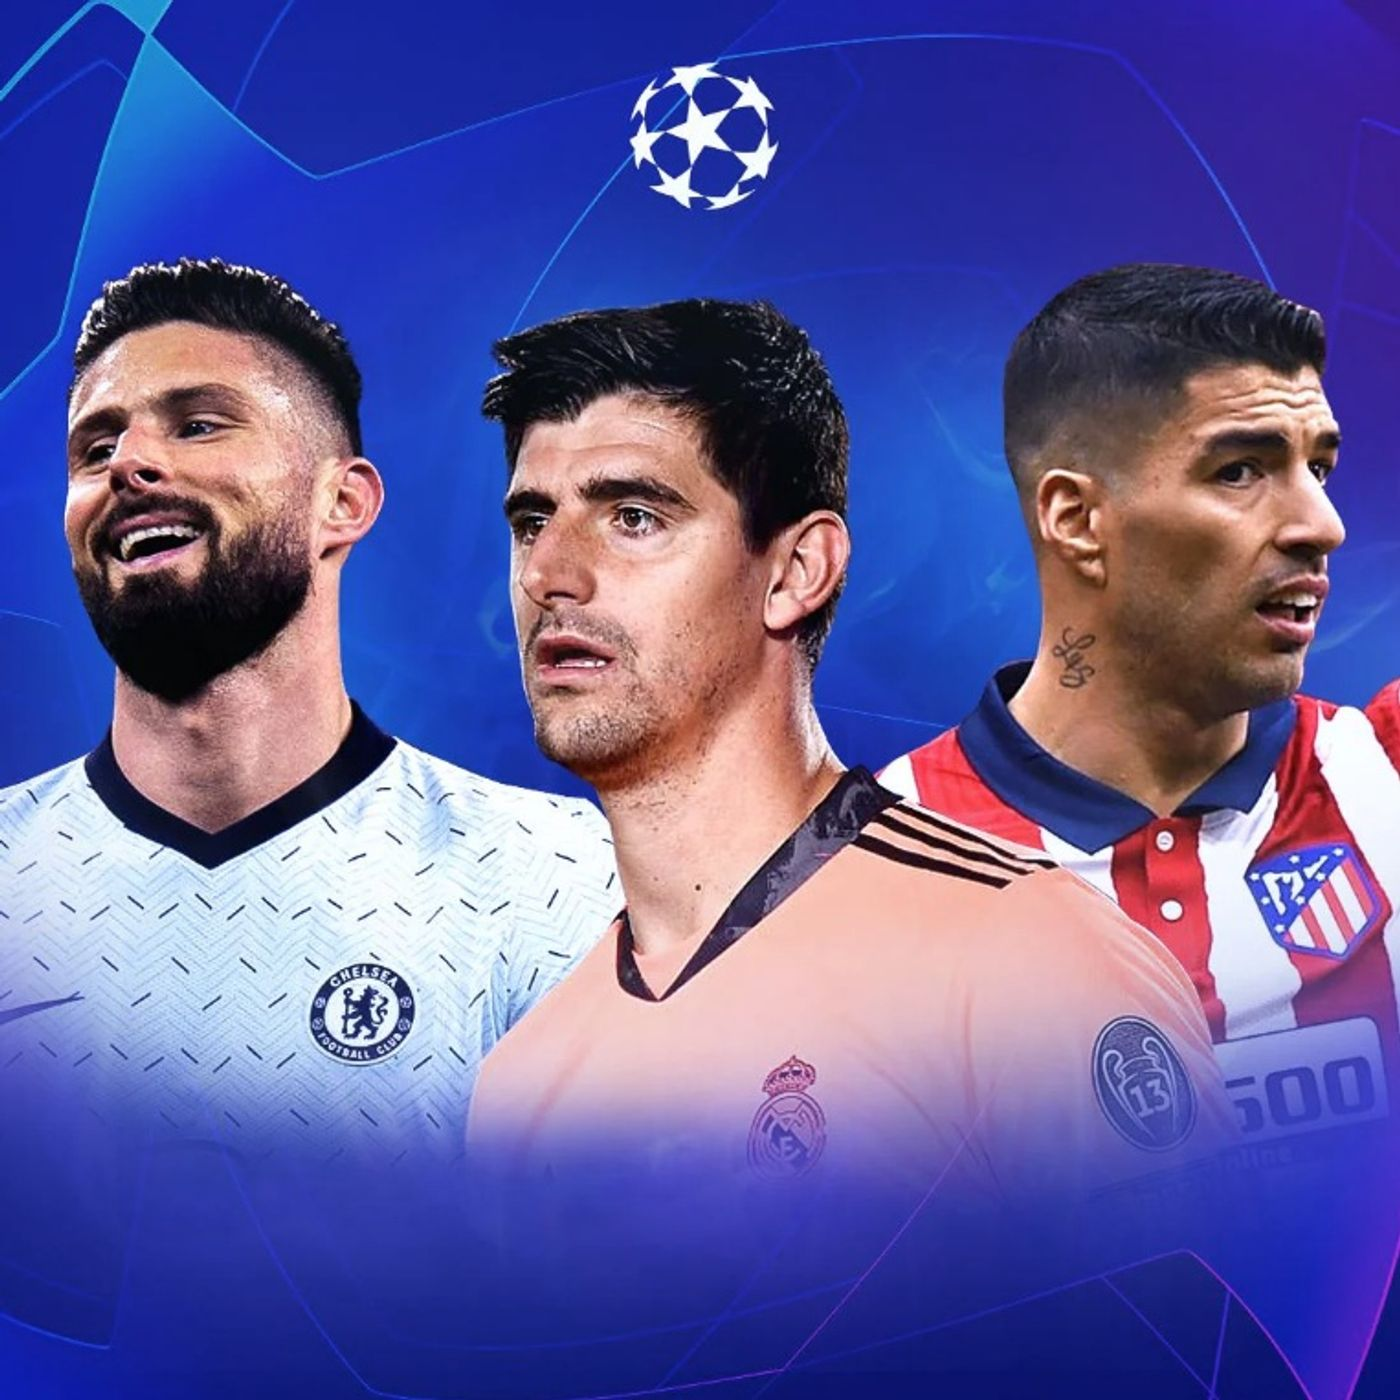 The UEFA Leagues: Betting Previews and Official Picks for Champions League & Europa League (03/16 - 03/18)